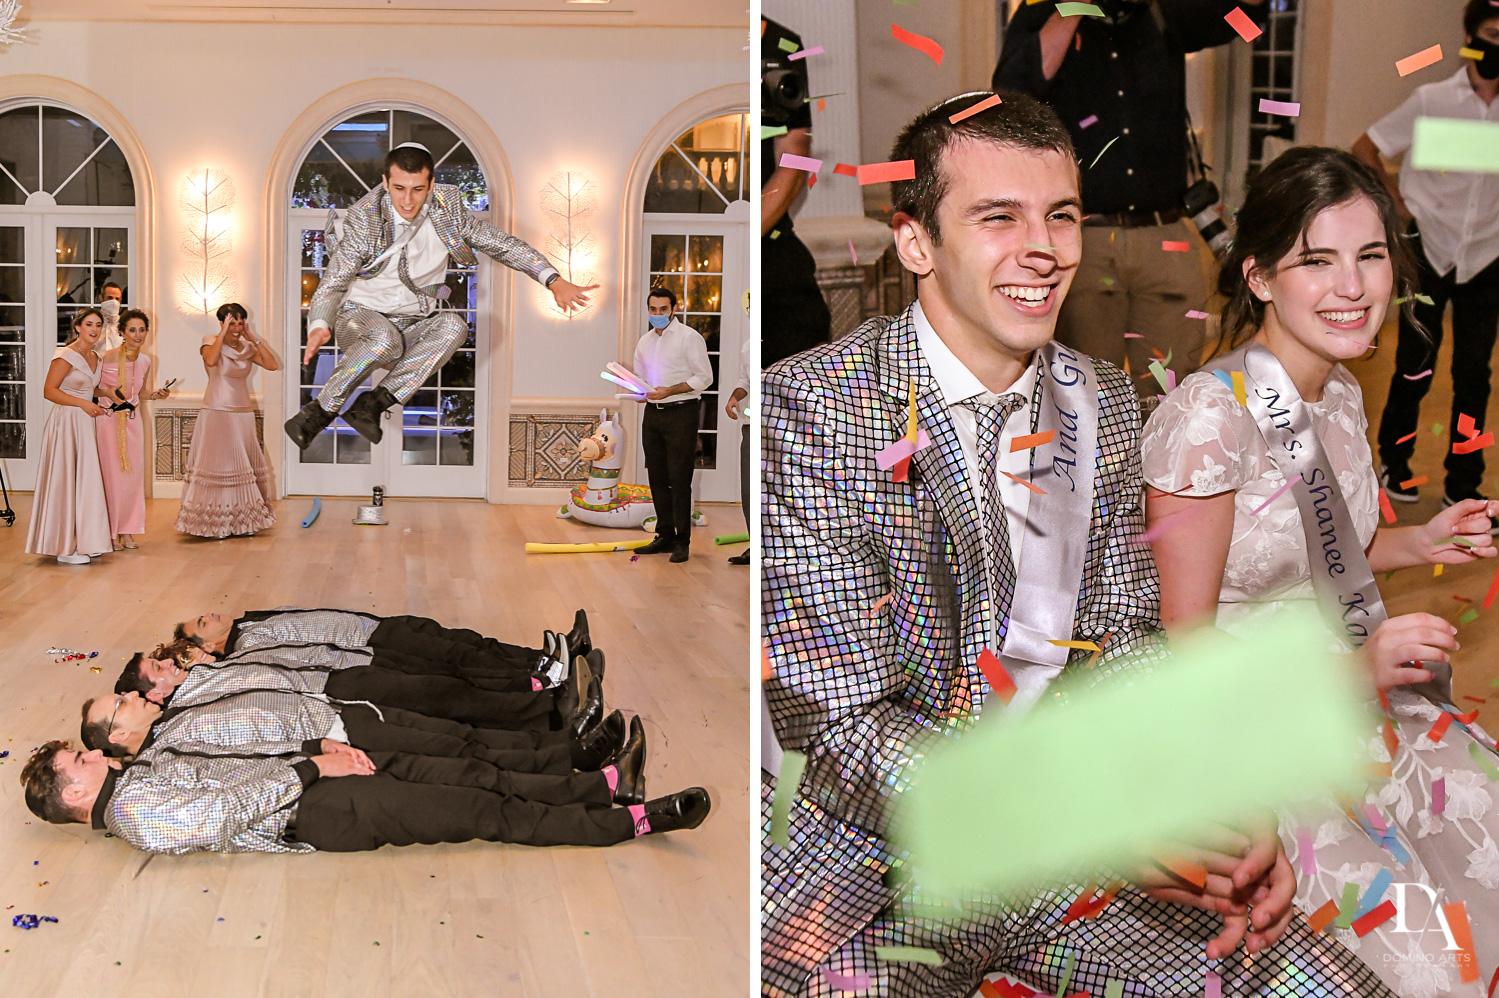 crazy fun party at Luxury Summer Wedding at The Colony Hotel Palm Beach by Domino Arts Photography